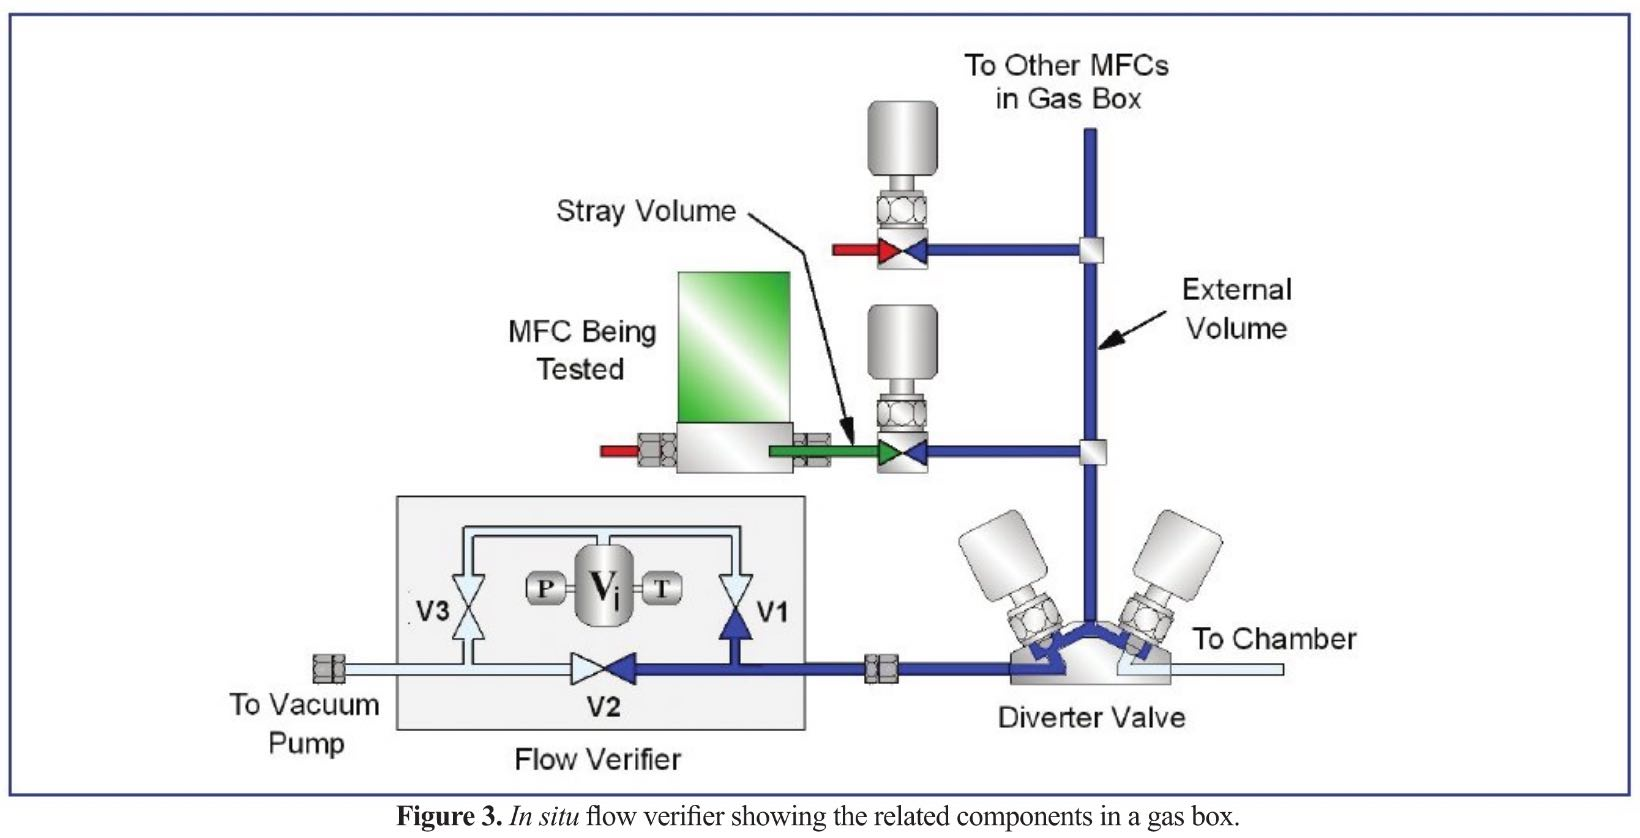 Thermal Mass Flow Meters and Controllers Part 2: Self-Verification Techniques